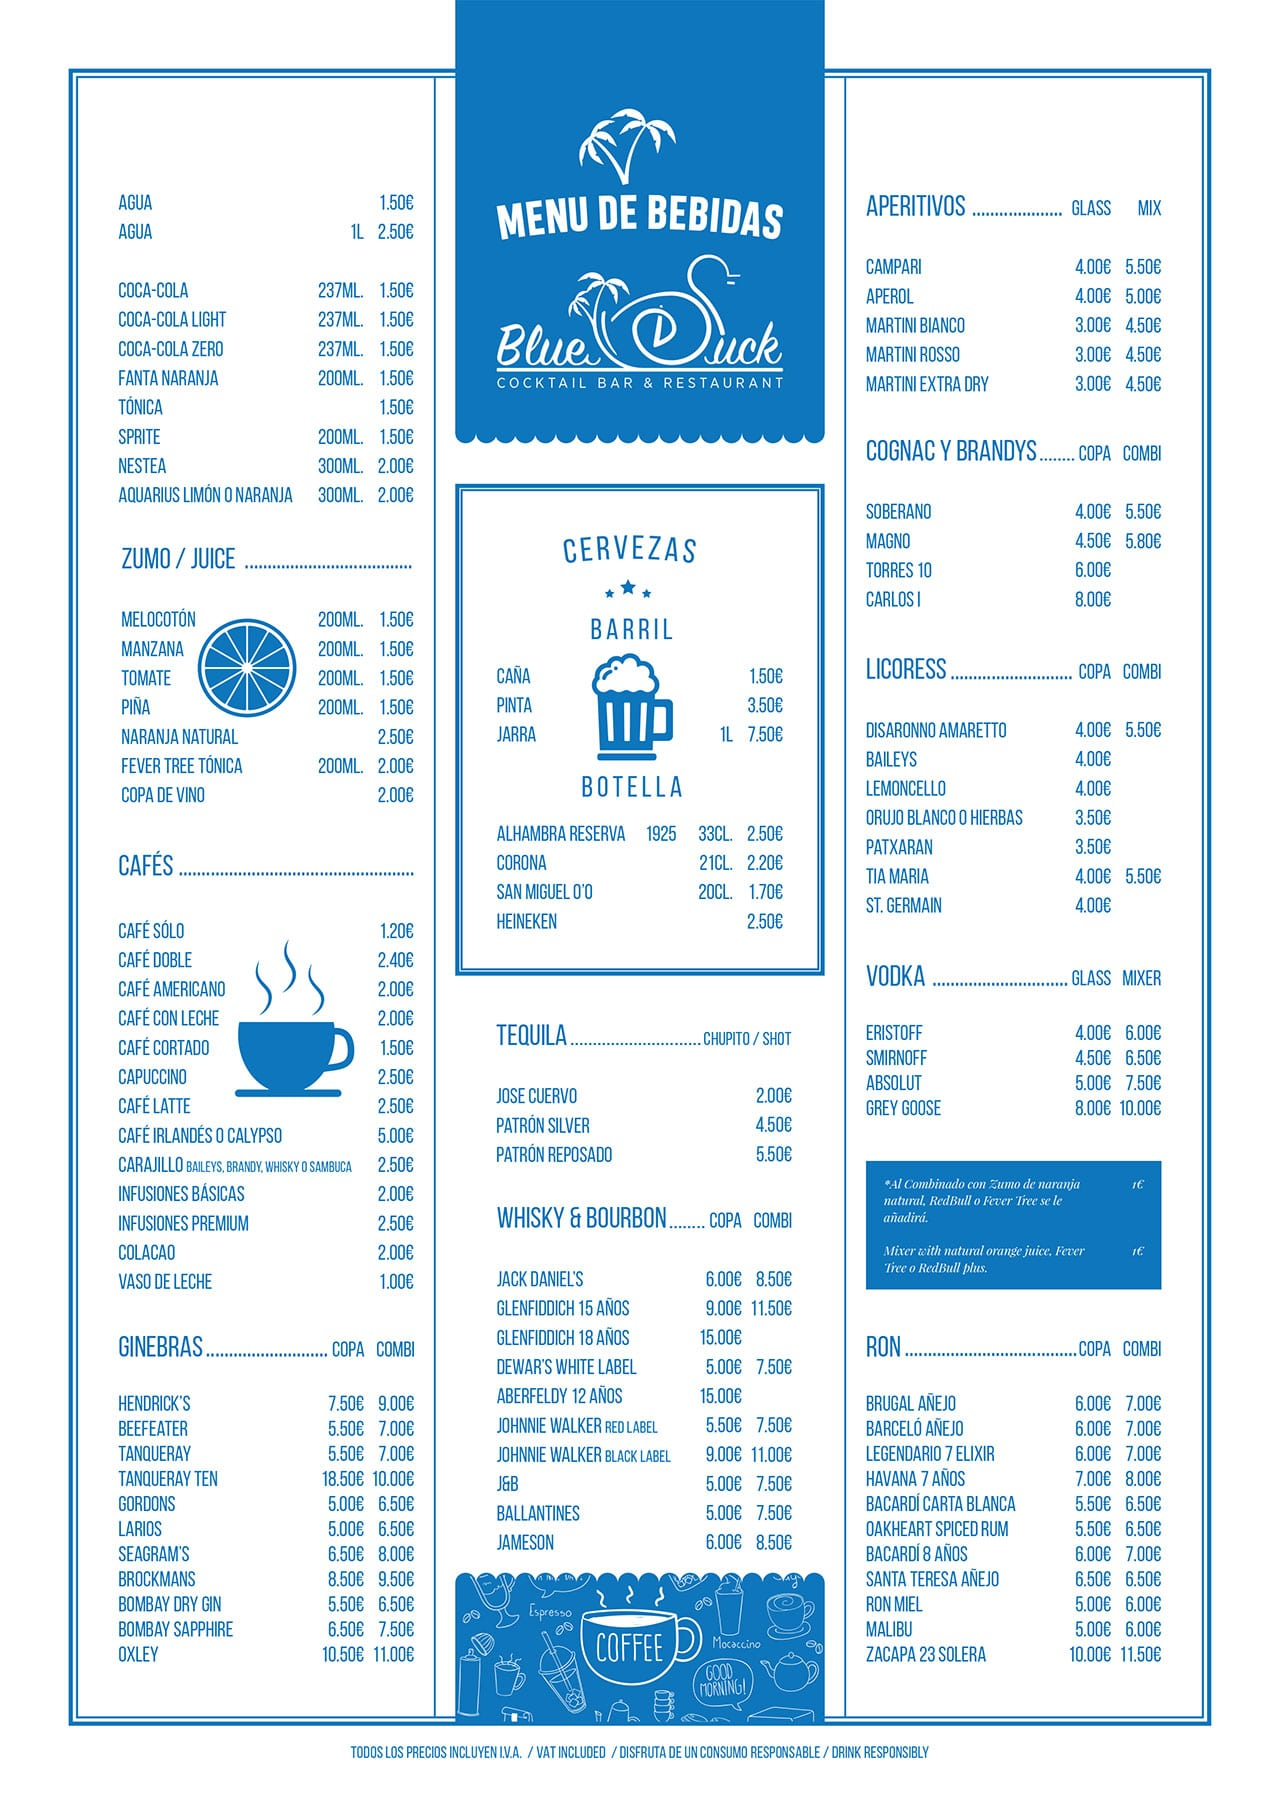 Drinks Menu - Blue Duck Restaurant